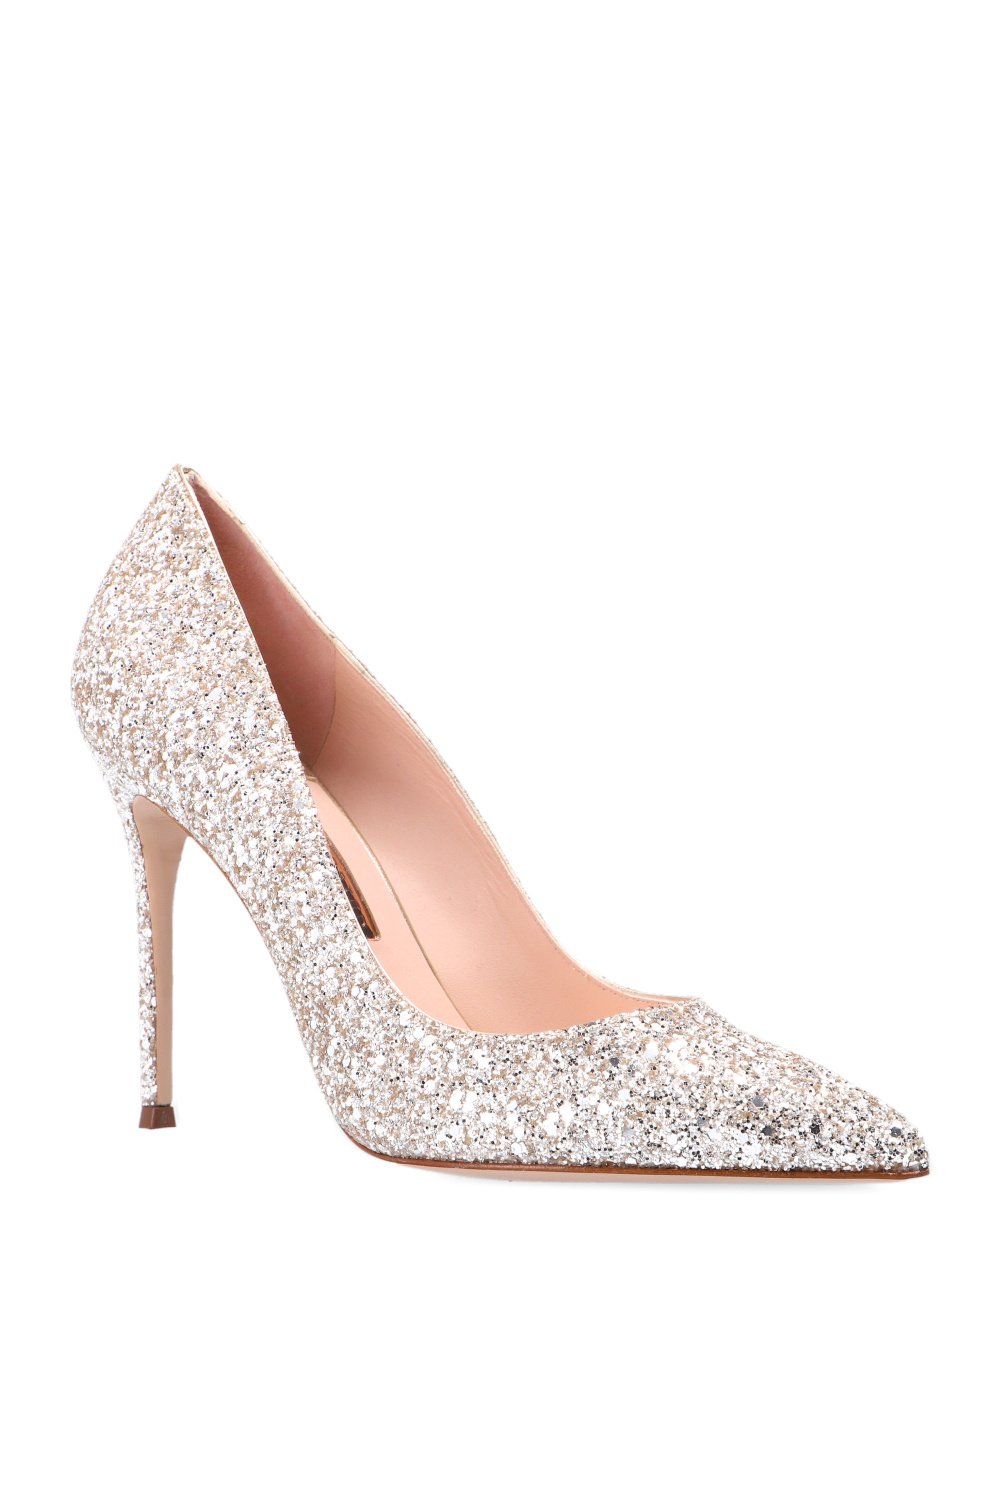 Sophia Webster 'Rio' stiletto pumps with sequins